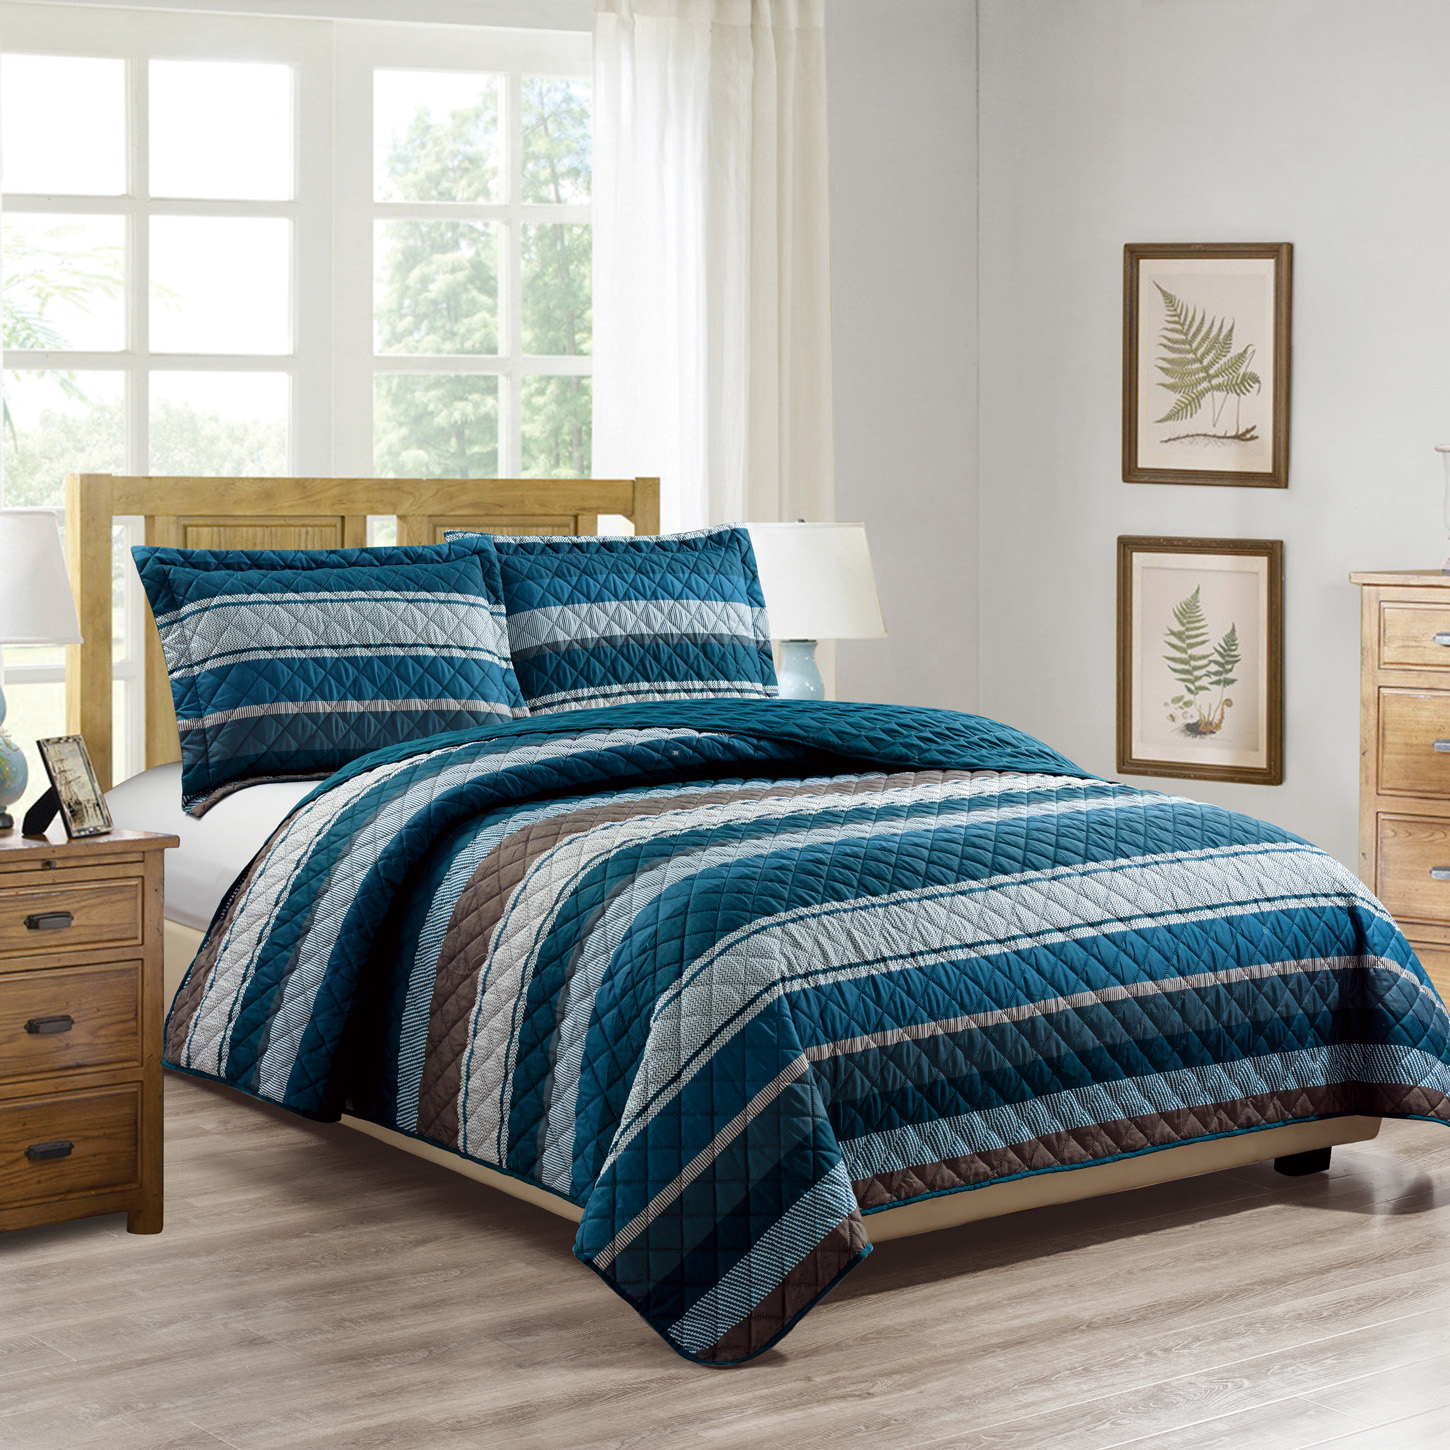 Woven Trends Printed Collection 3PC Striped Blues Quilt Set Bedspread Coverlet by Woven Trends